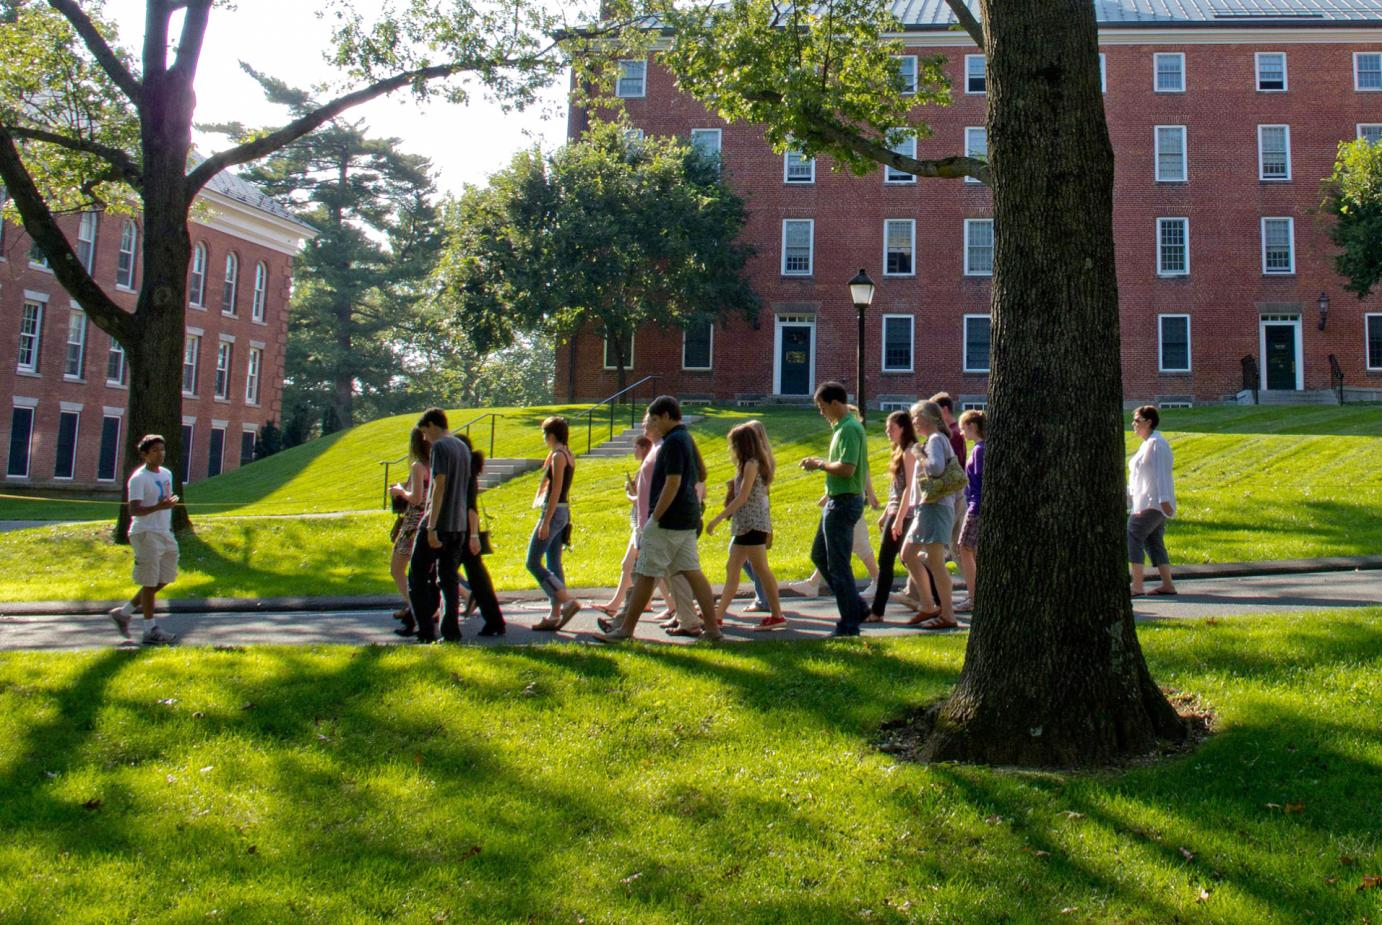 Take a Virtual Tour of the Amherst College Campus